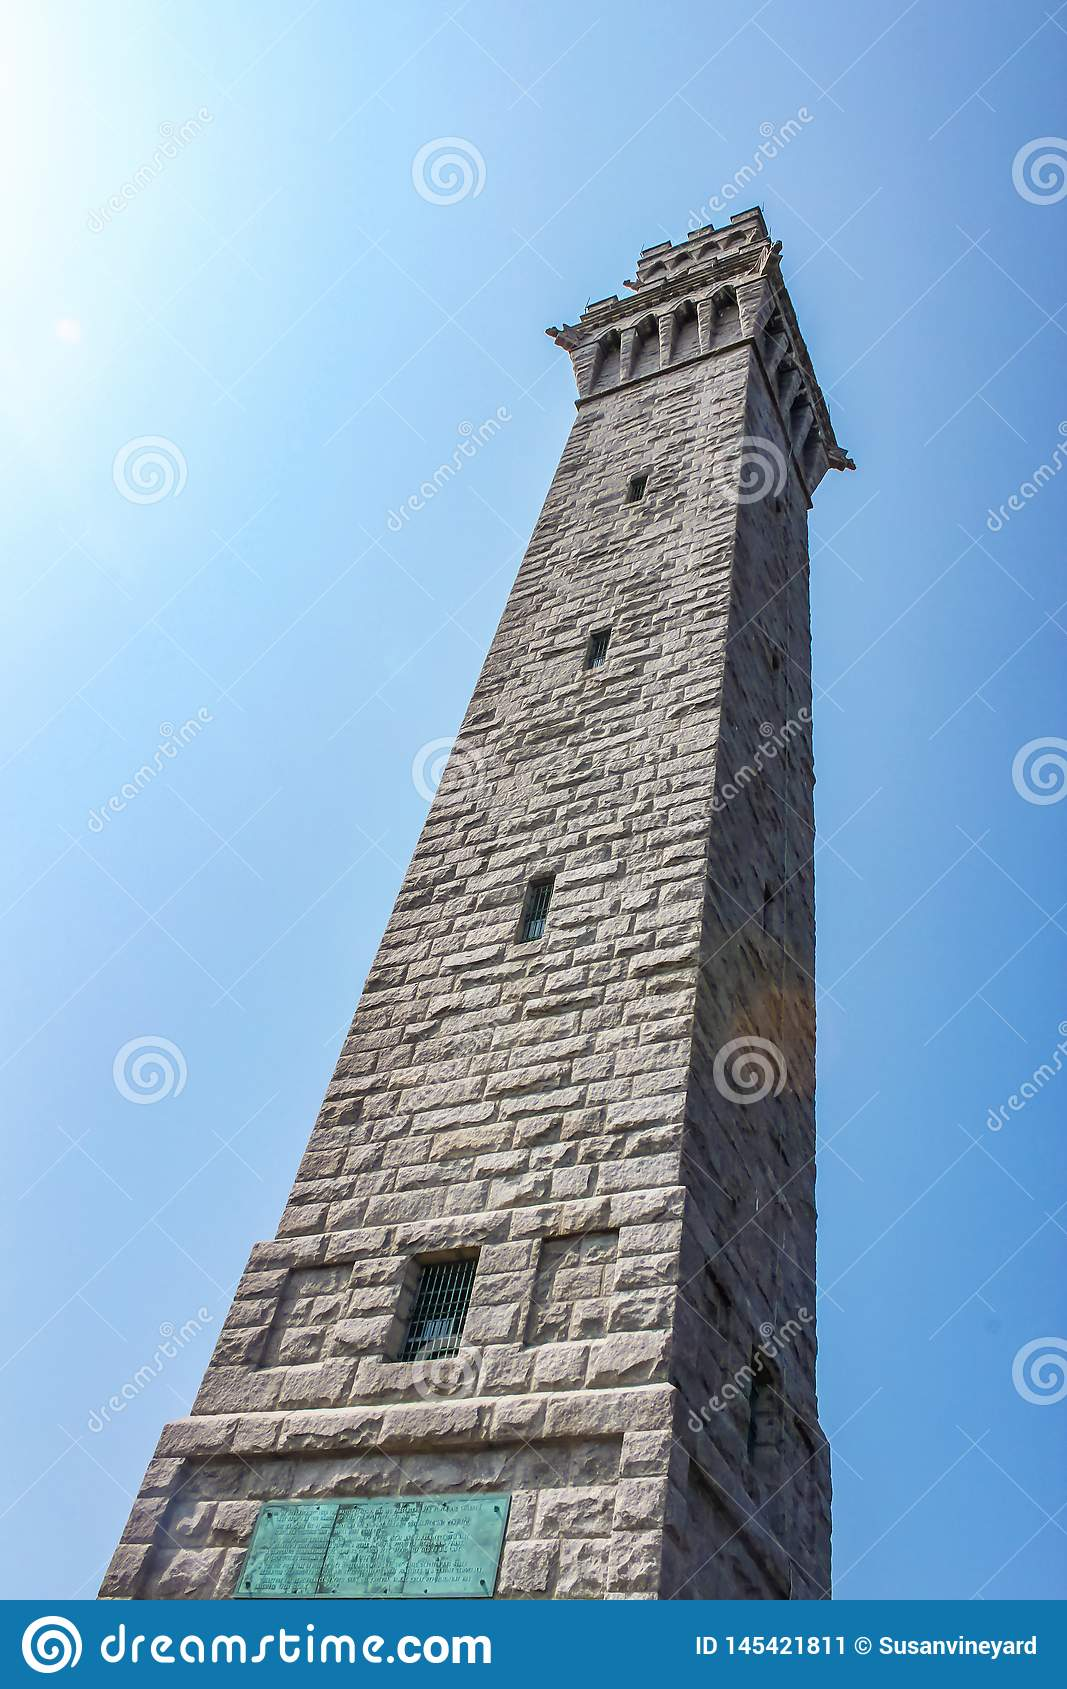 Looking up at the Pilgrim Monument in Provincetown Cape Cod that commemorates the Mayflower Pilgrims first landing in the New